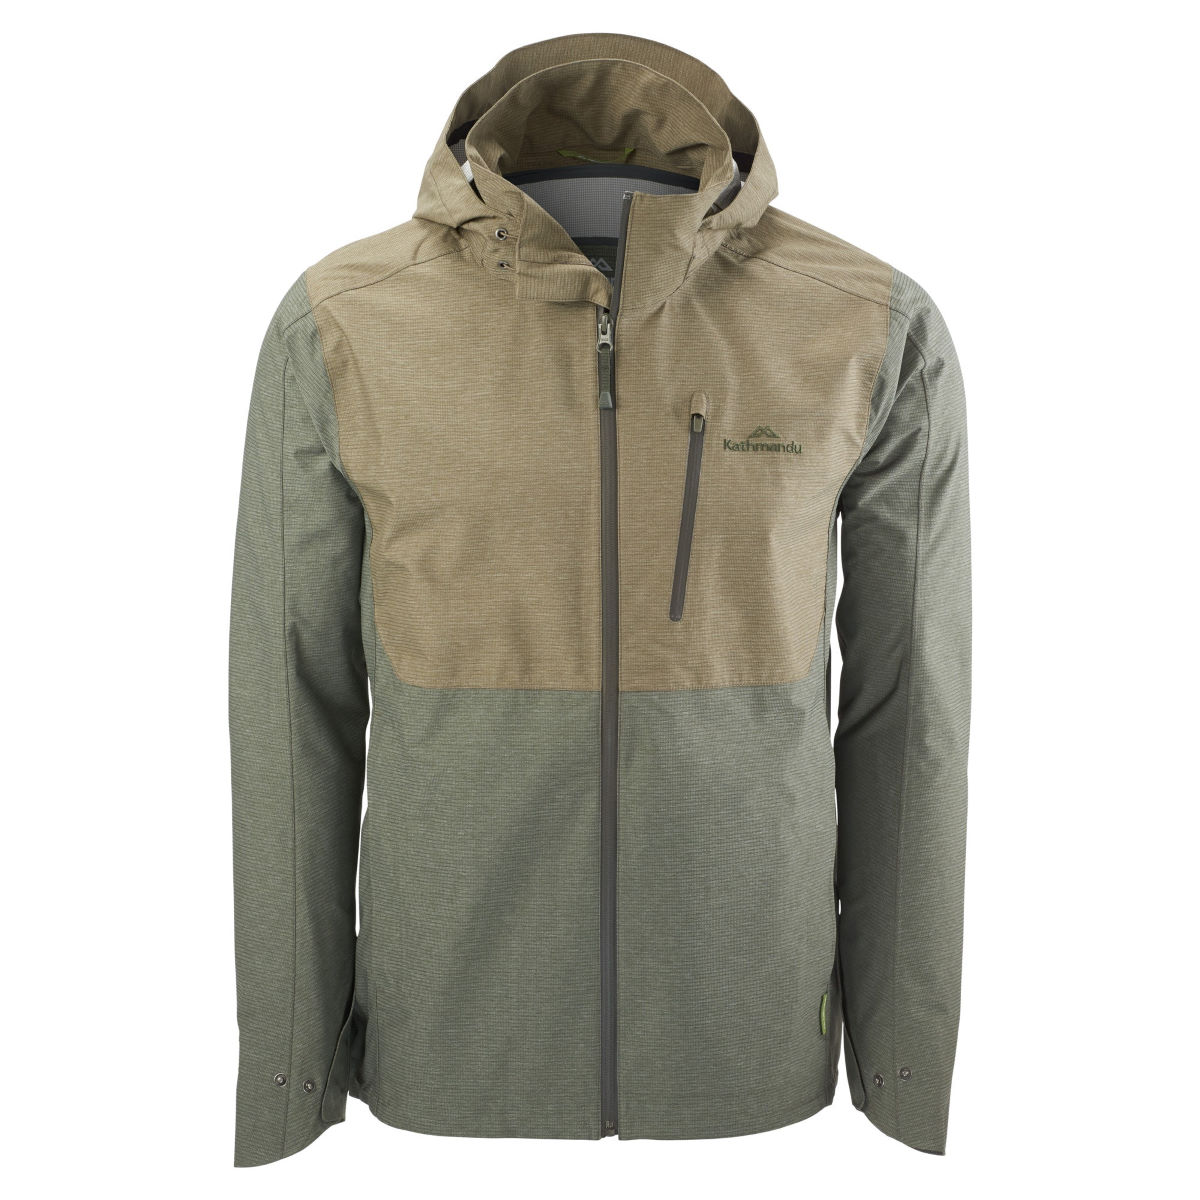 Veste Kathmandu Lawrence v2 - XL Dune/Conifer Vestes imperméables